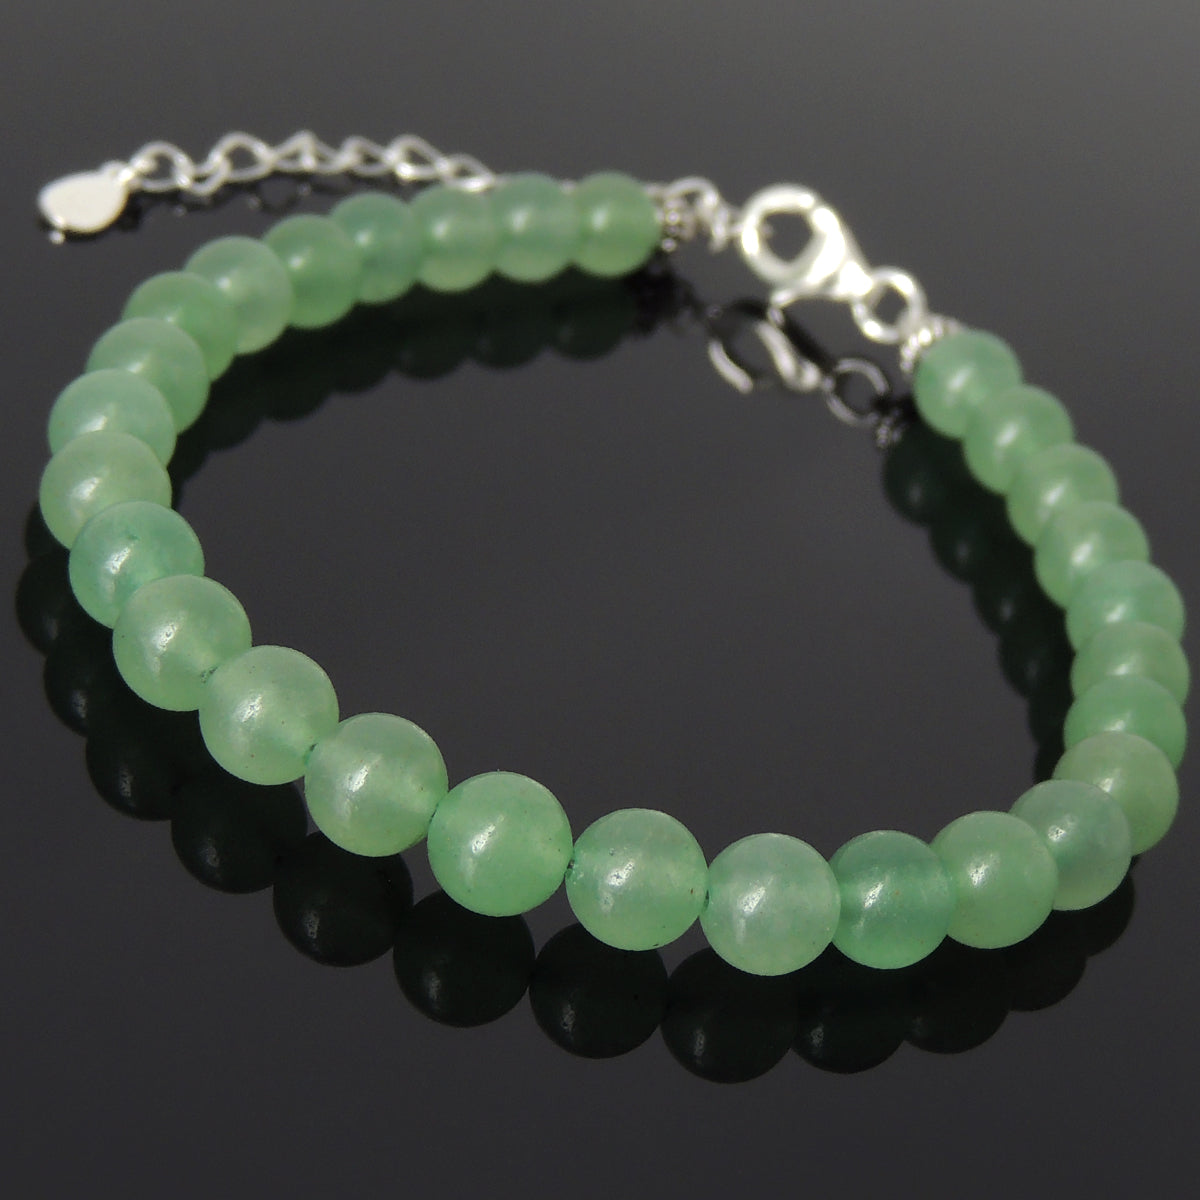 6mm Aventurine Quartz Healing Gemstone Bracelet with S925 Sterling Silver Chain & Clasp - Handmade by Gem & Silver BR1247